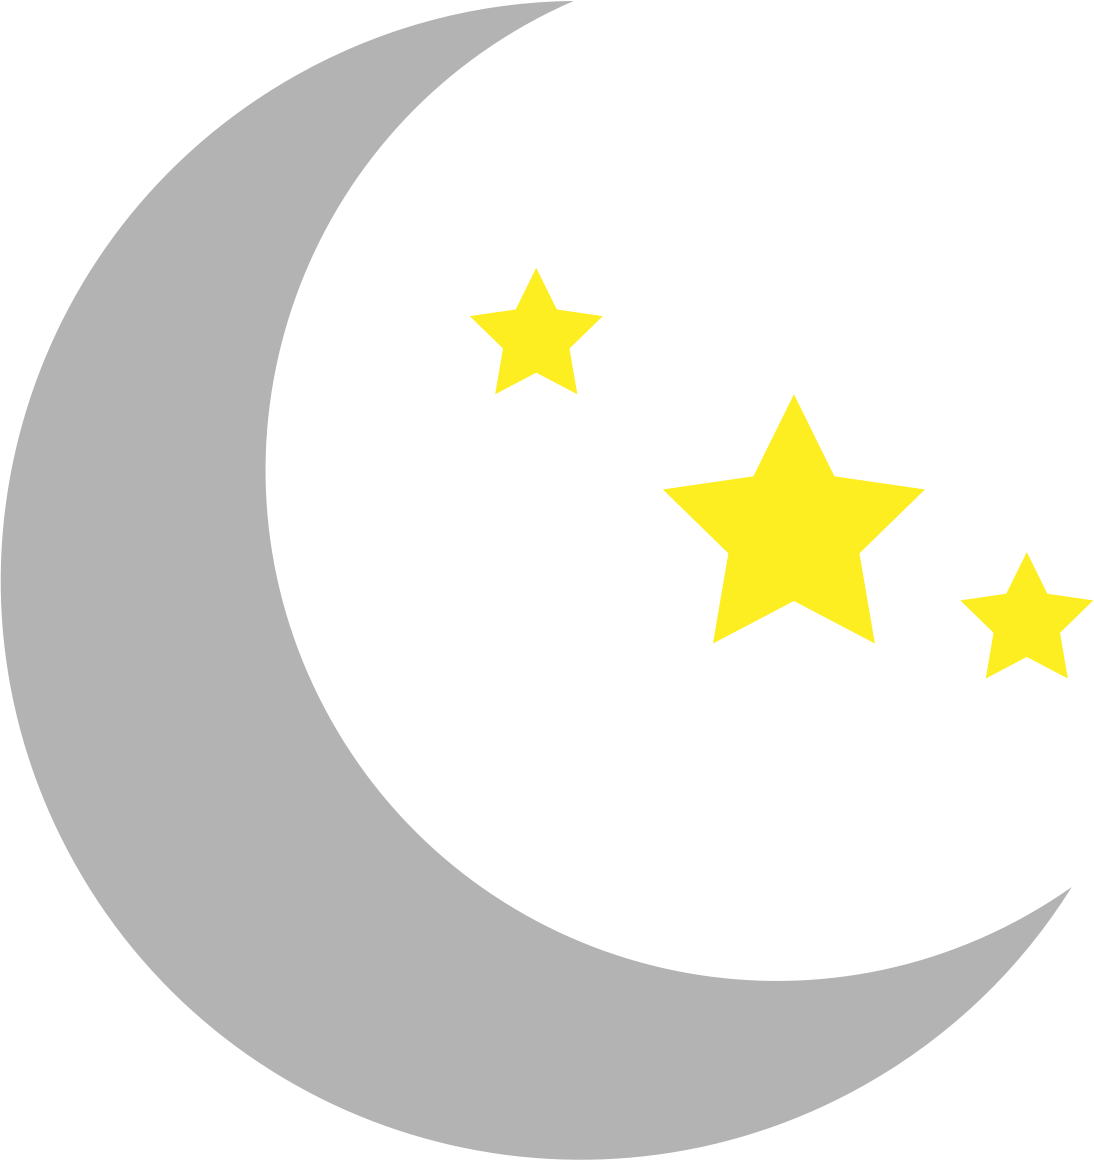 clipart moon and stars rh openclipart org moon and stars clipart png moon and stars clipart free